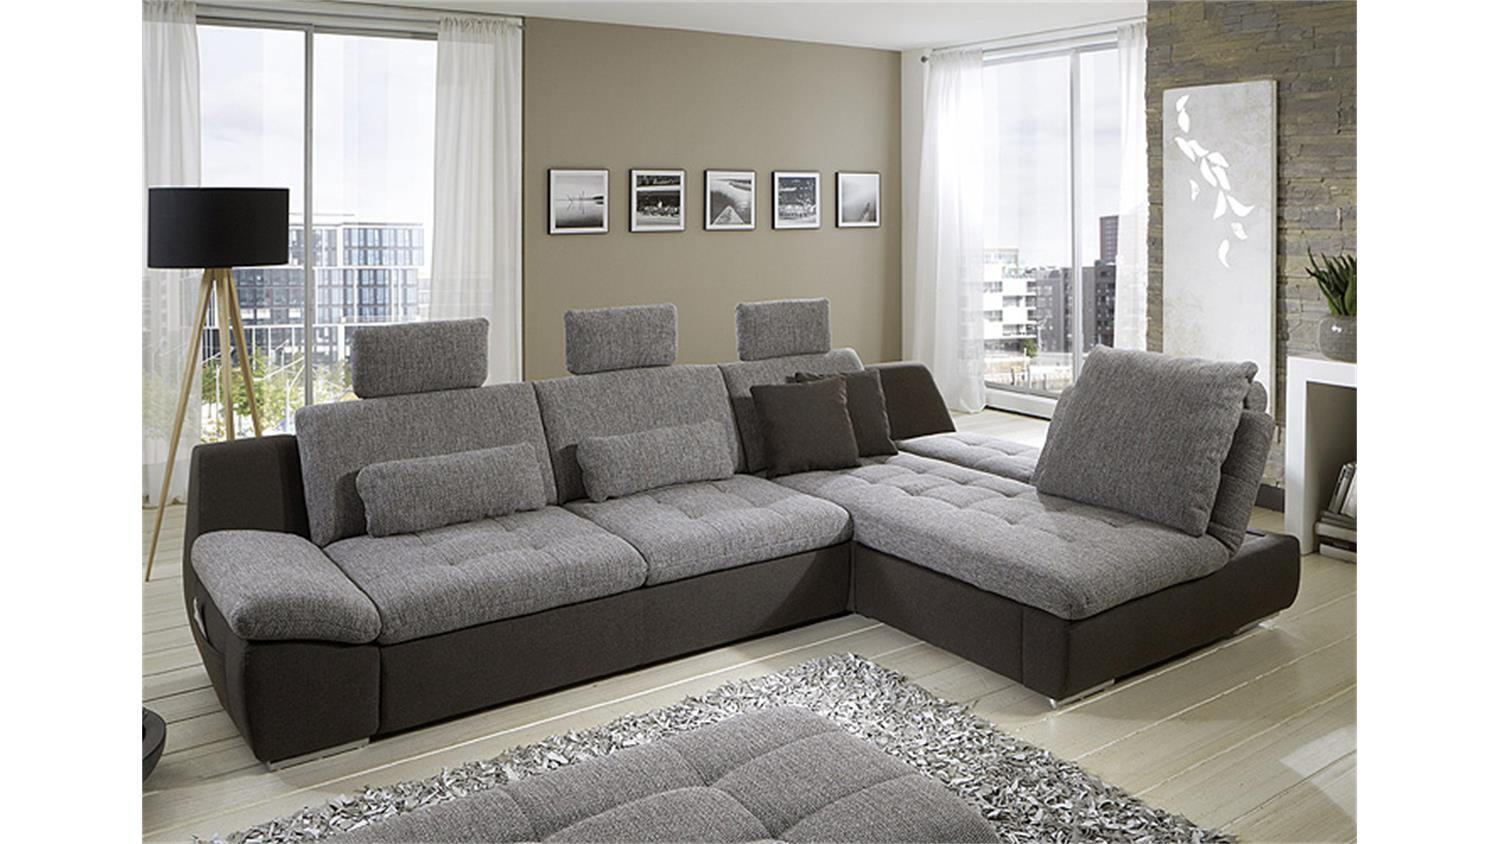 ecksofa munich grau braun mit funktionen. Black Bedroom Furniture Sets. Home Design Ideas